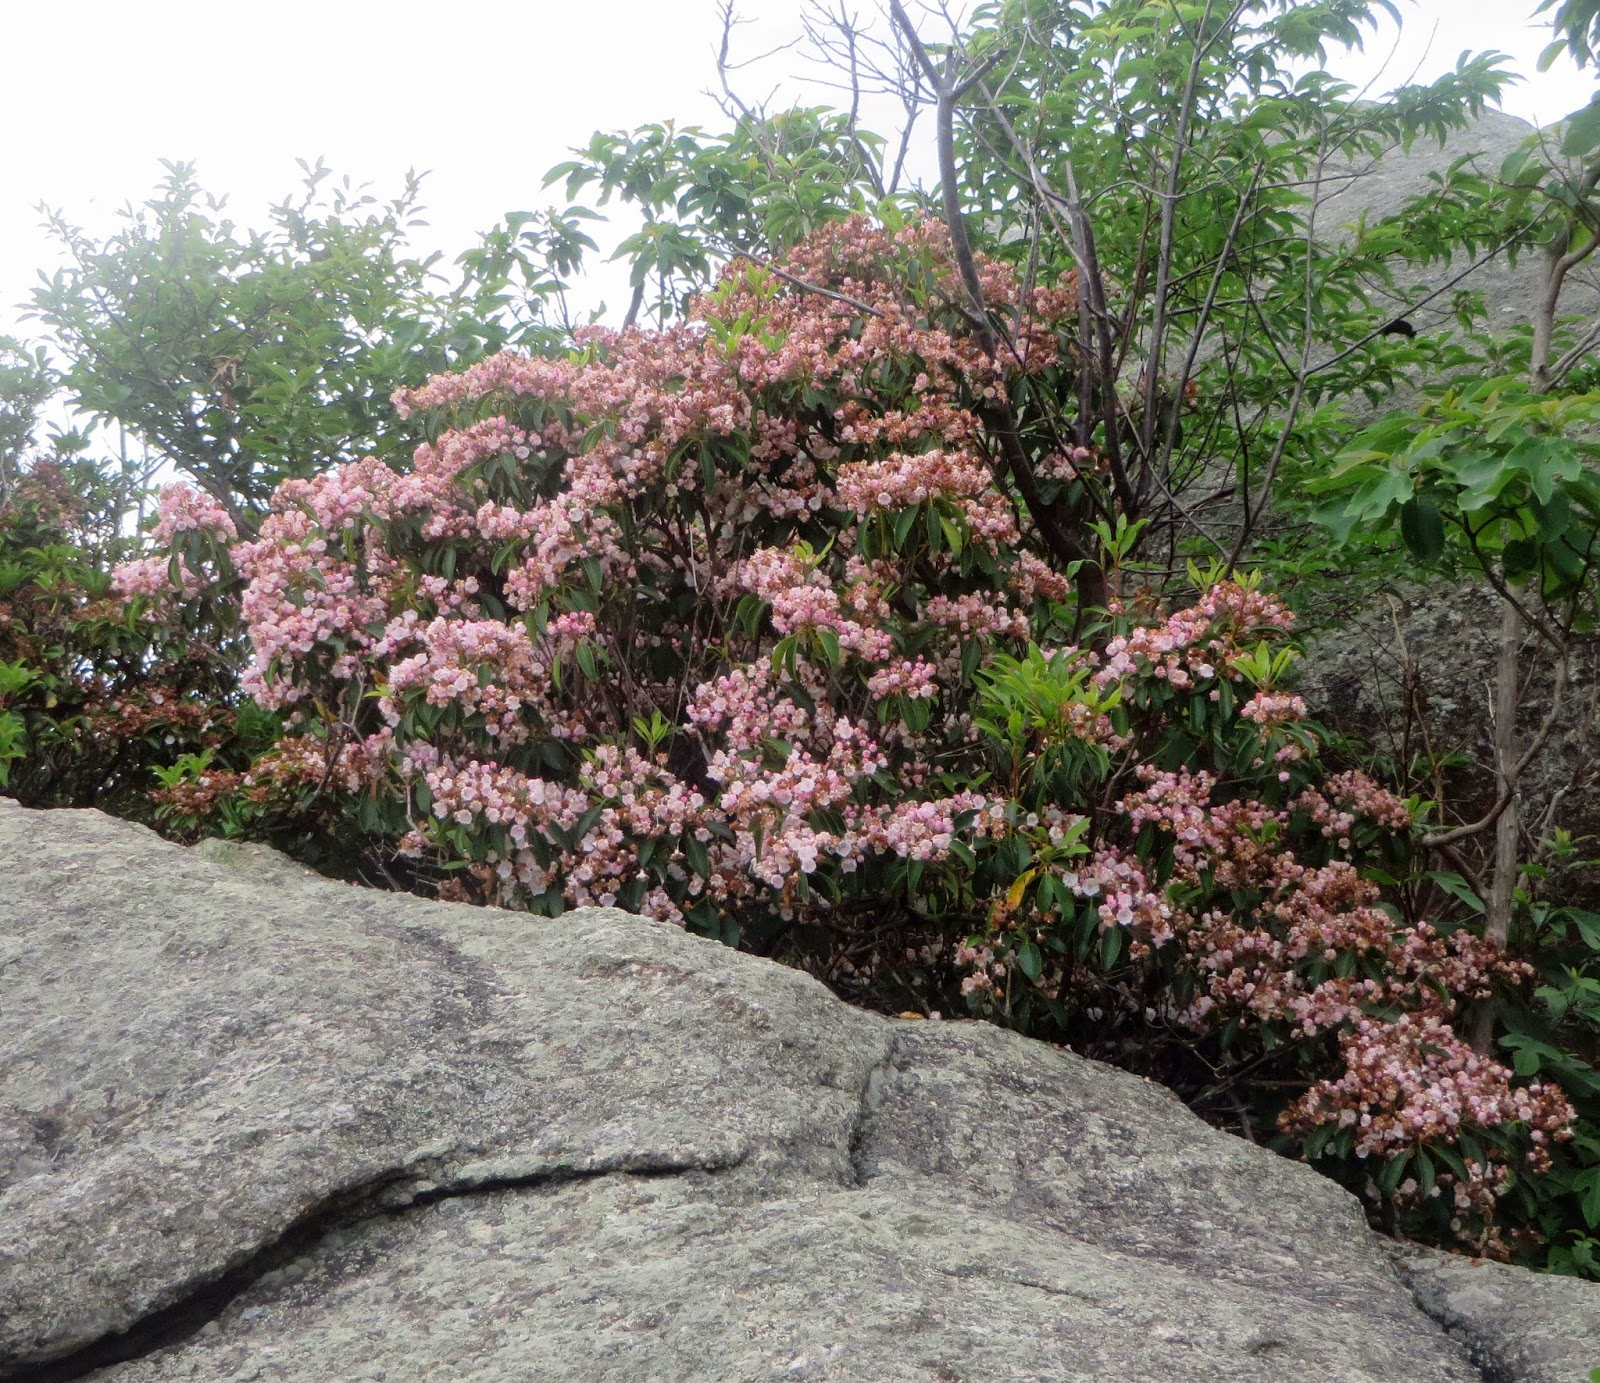 Old Rag Mountain Closed: NOT FROM THIS WEEKEND